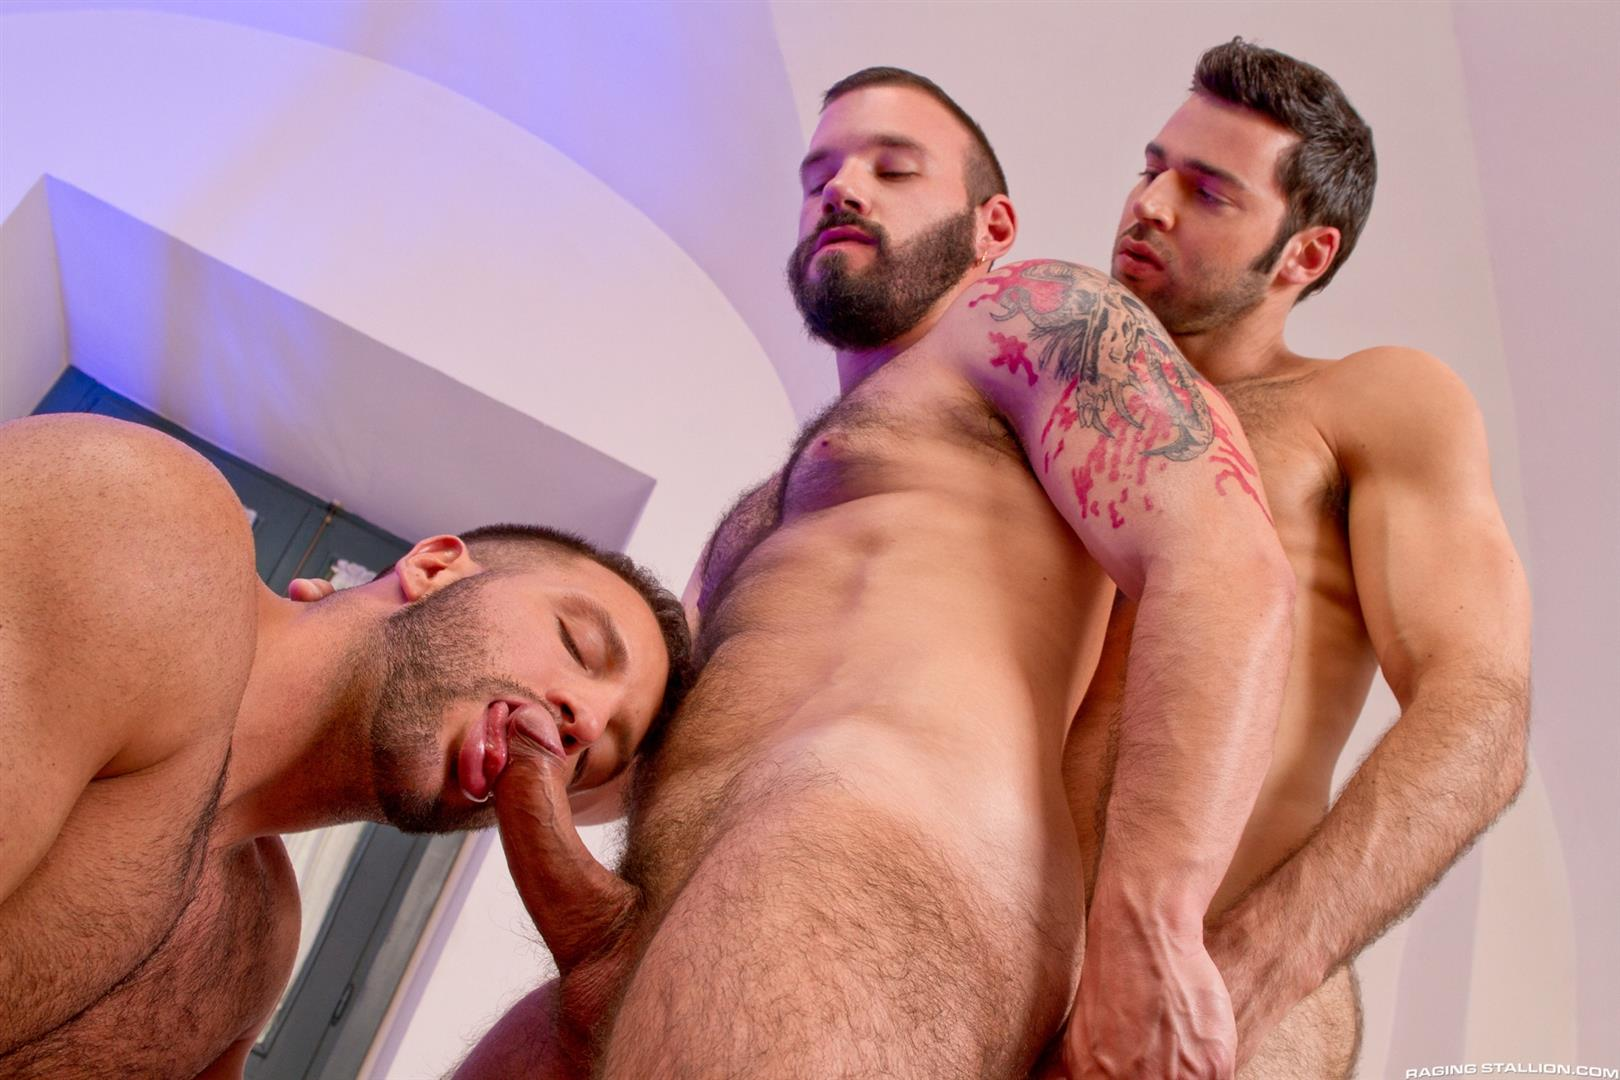 Raging Stallion Donato Reyes and Dario Beck and Alessio Veneziano Hairy Muscle Bears With Big Uncut Cocks Fucking Amateur Gay Porn 02 Hairy Muscle Bear Hustlers With Big Uncut Cocks Fucking A John